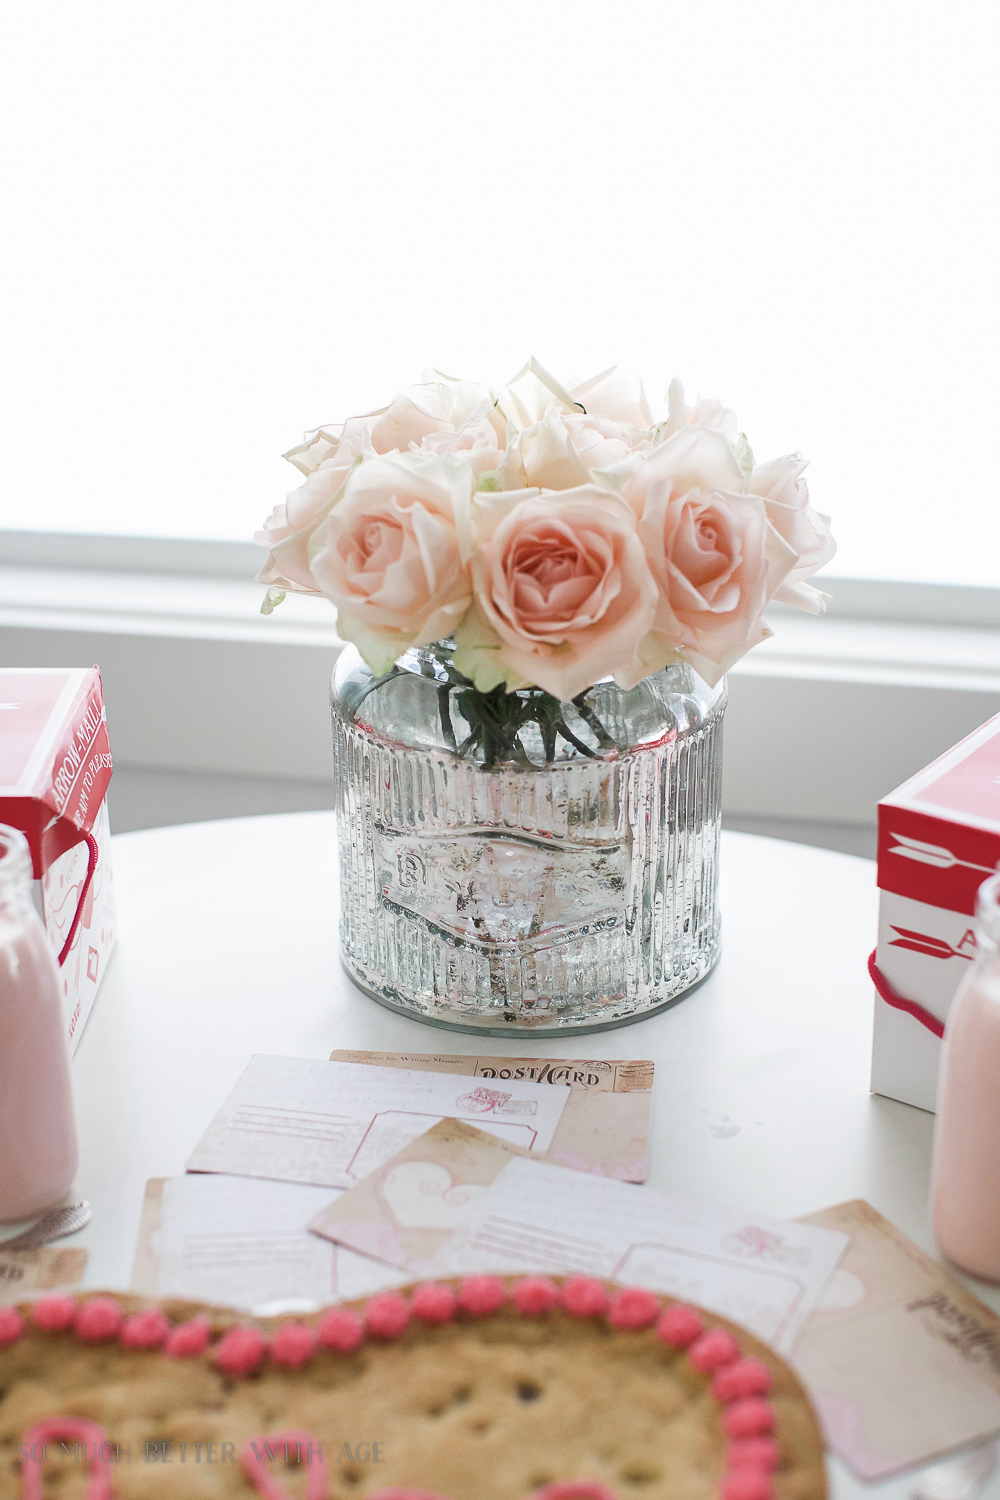 Valentine's Day Kids' Table / roses in vase - So Much Better With Age